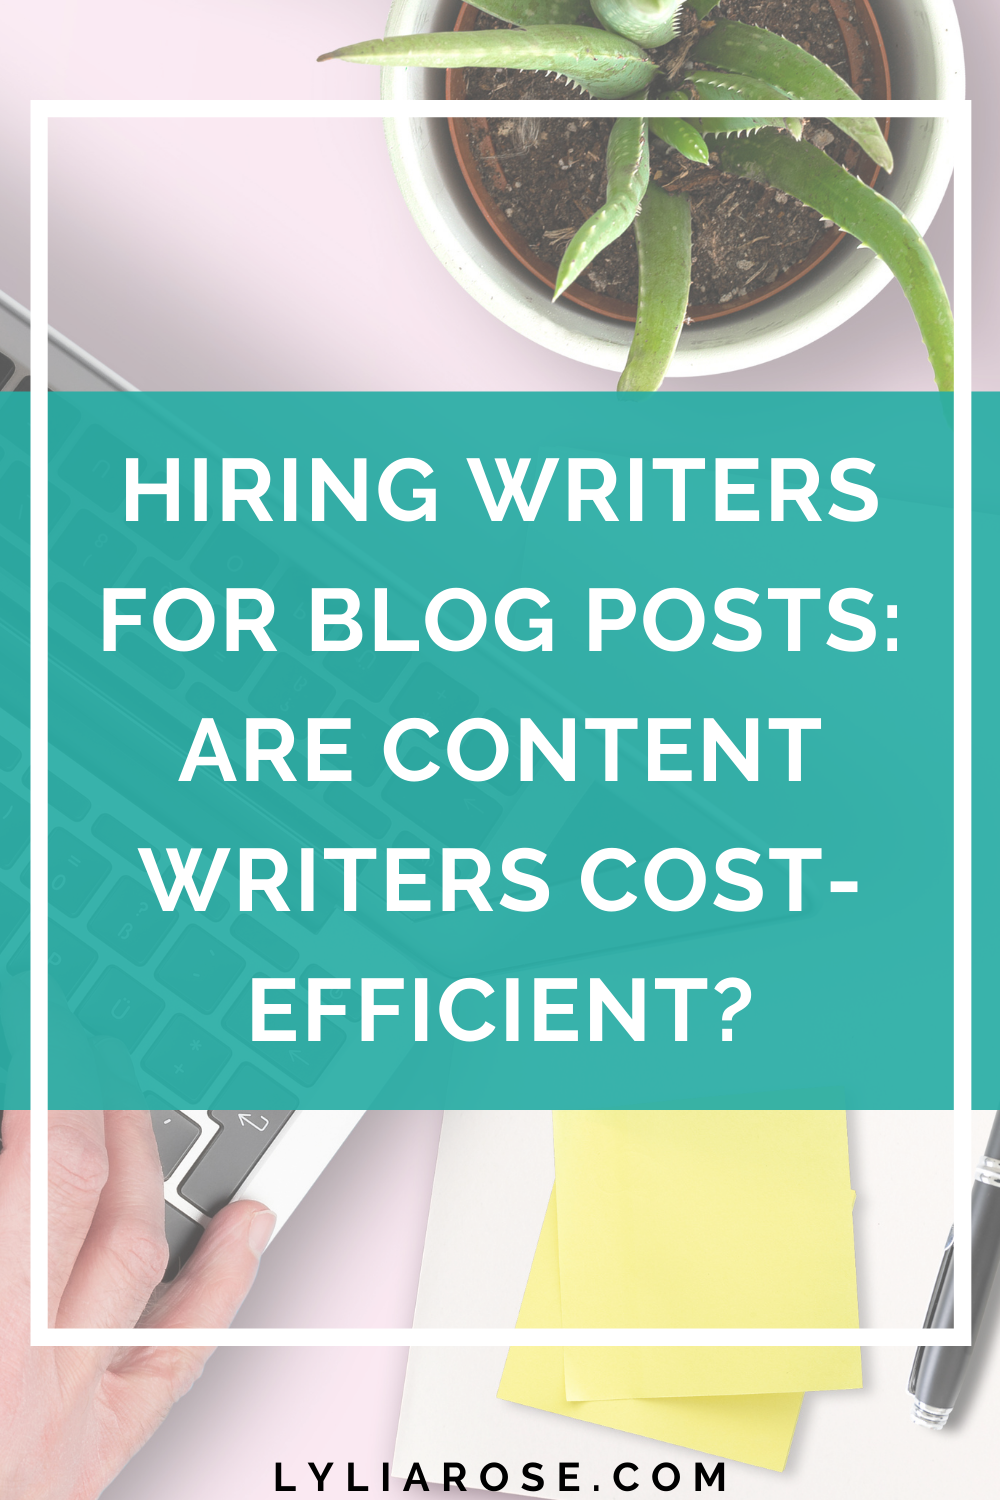 Hiring writers for blog posts are expert writers cost-efficient_